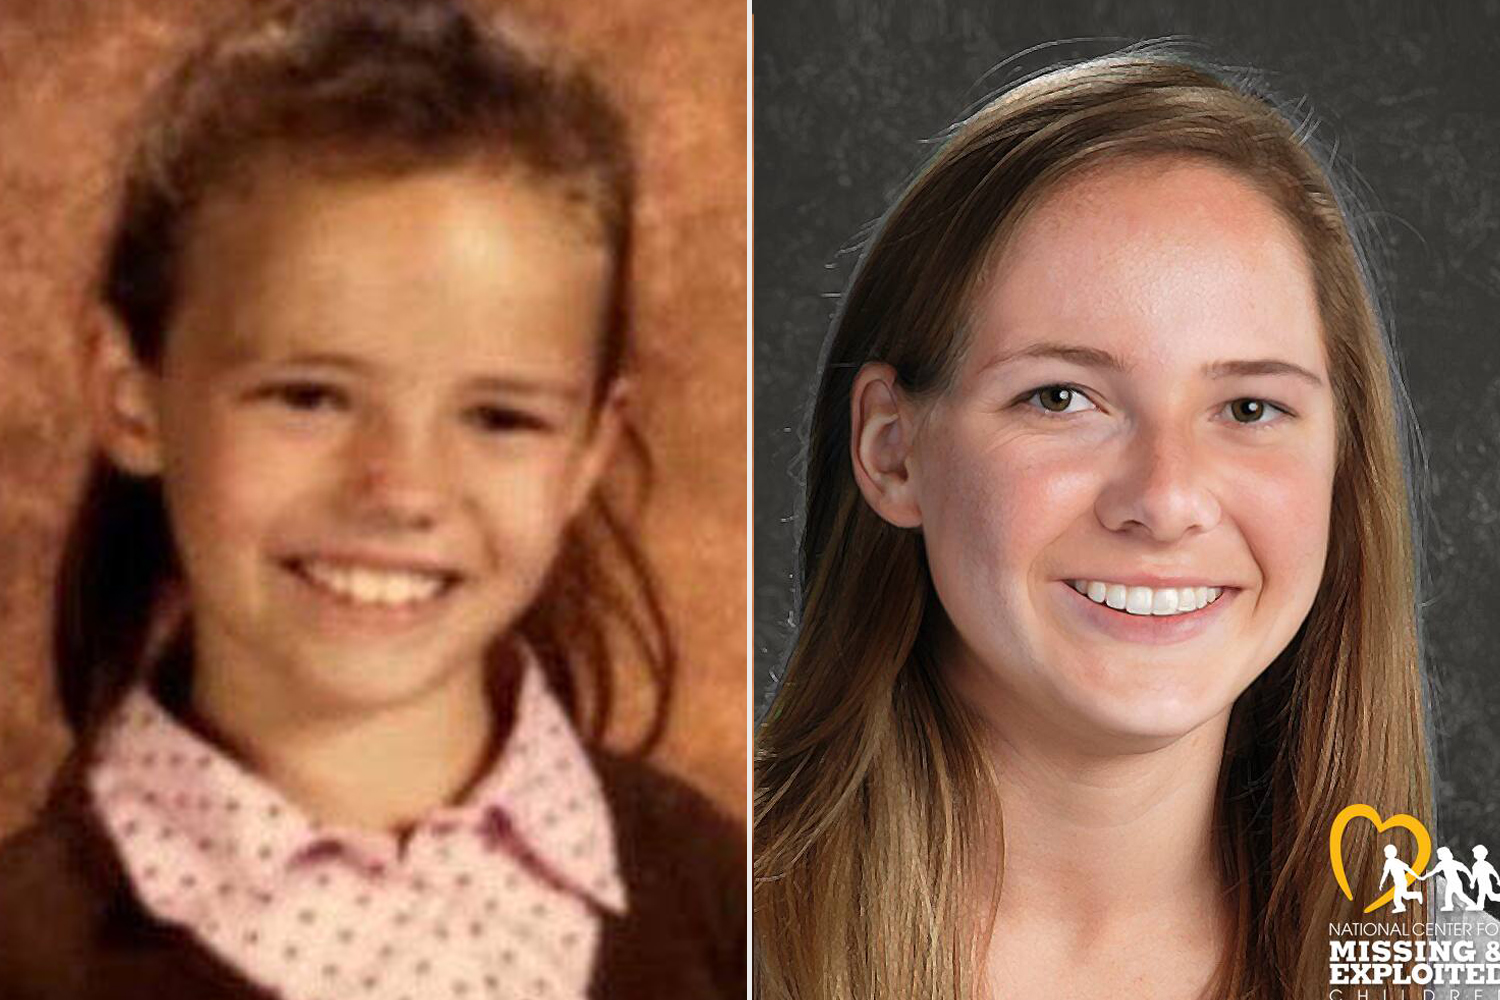 Kaya Centeno at age 7 (left) and what she would look like at 18 in a digitally enhanced image